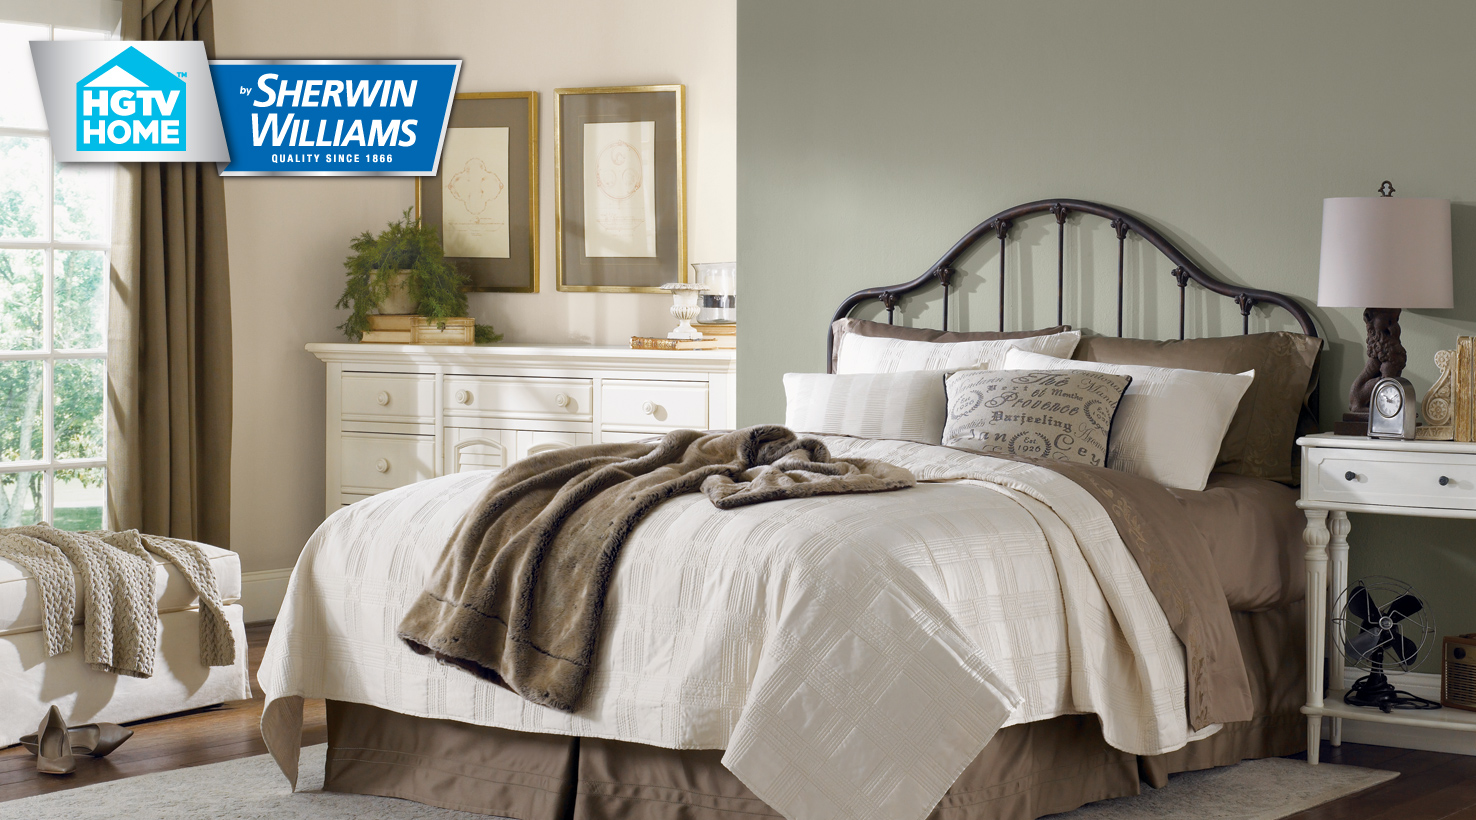 Neutral nuance color palette hgtv home by sherwin williams for Sherwin williams neutral paint colors